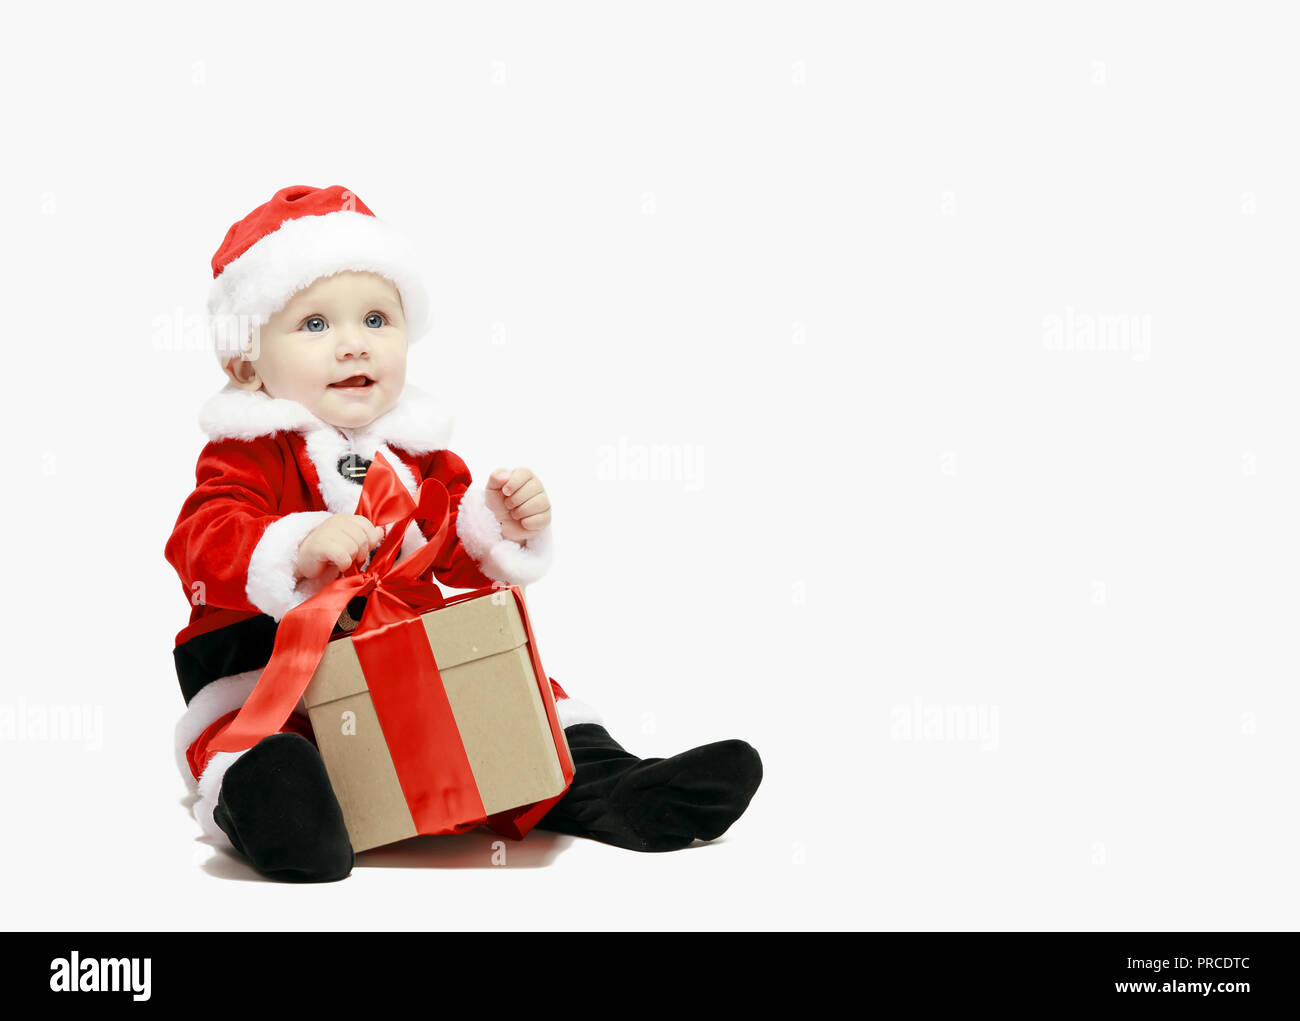 06c11bded22 Santa Claus baby in red christmas clothes with gift box isolated on white  background - Stock